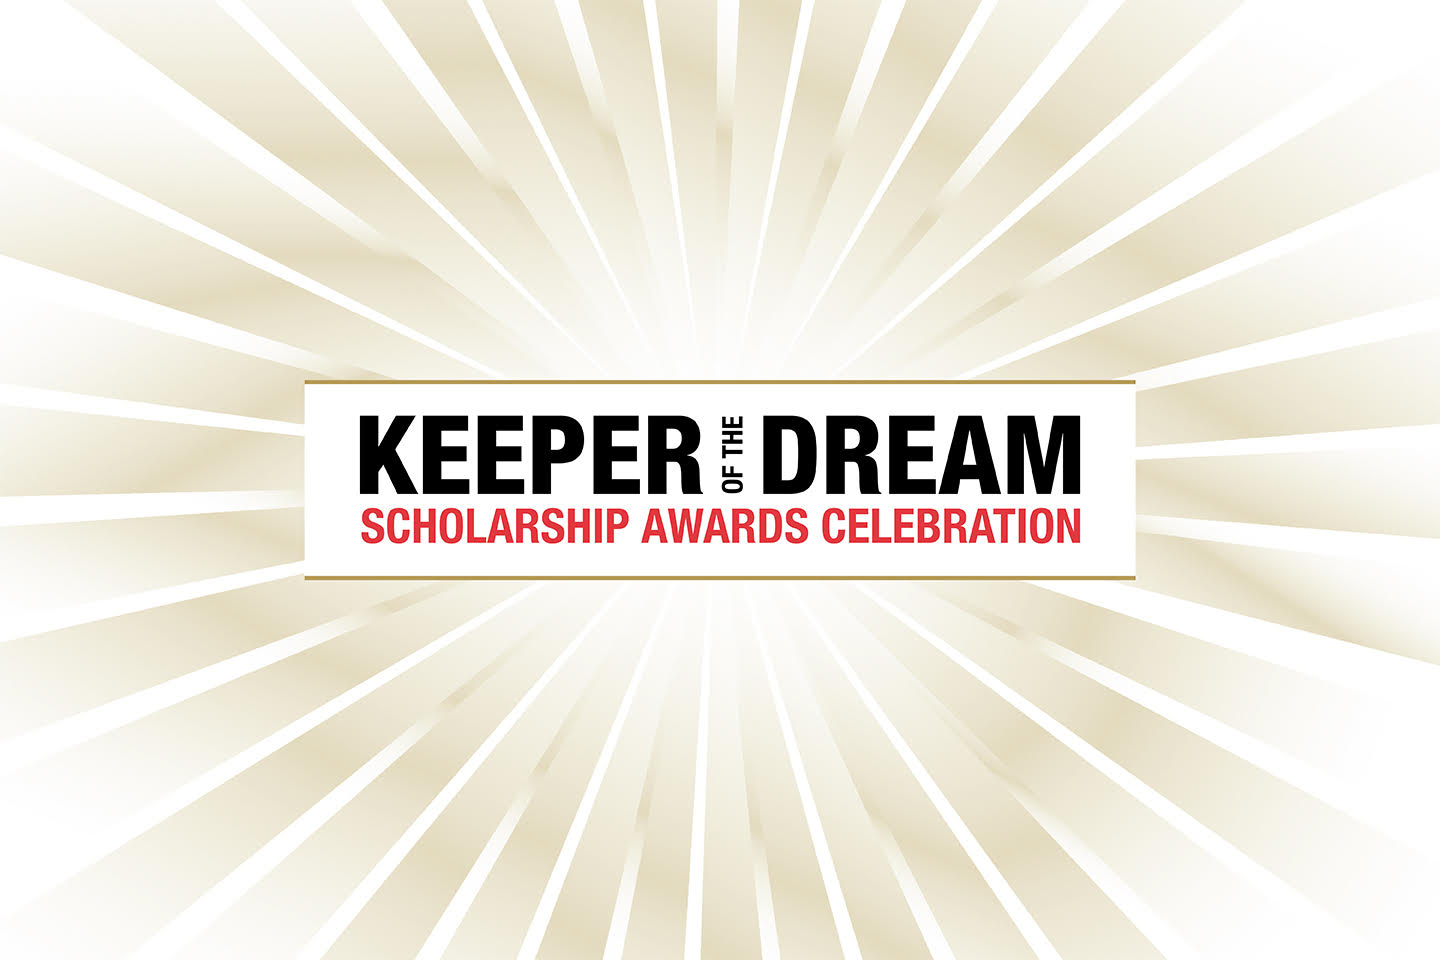 Applications sought for Keeper of the Dream Scholarship Awards